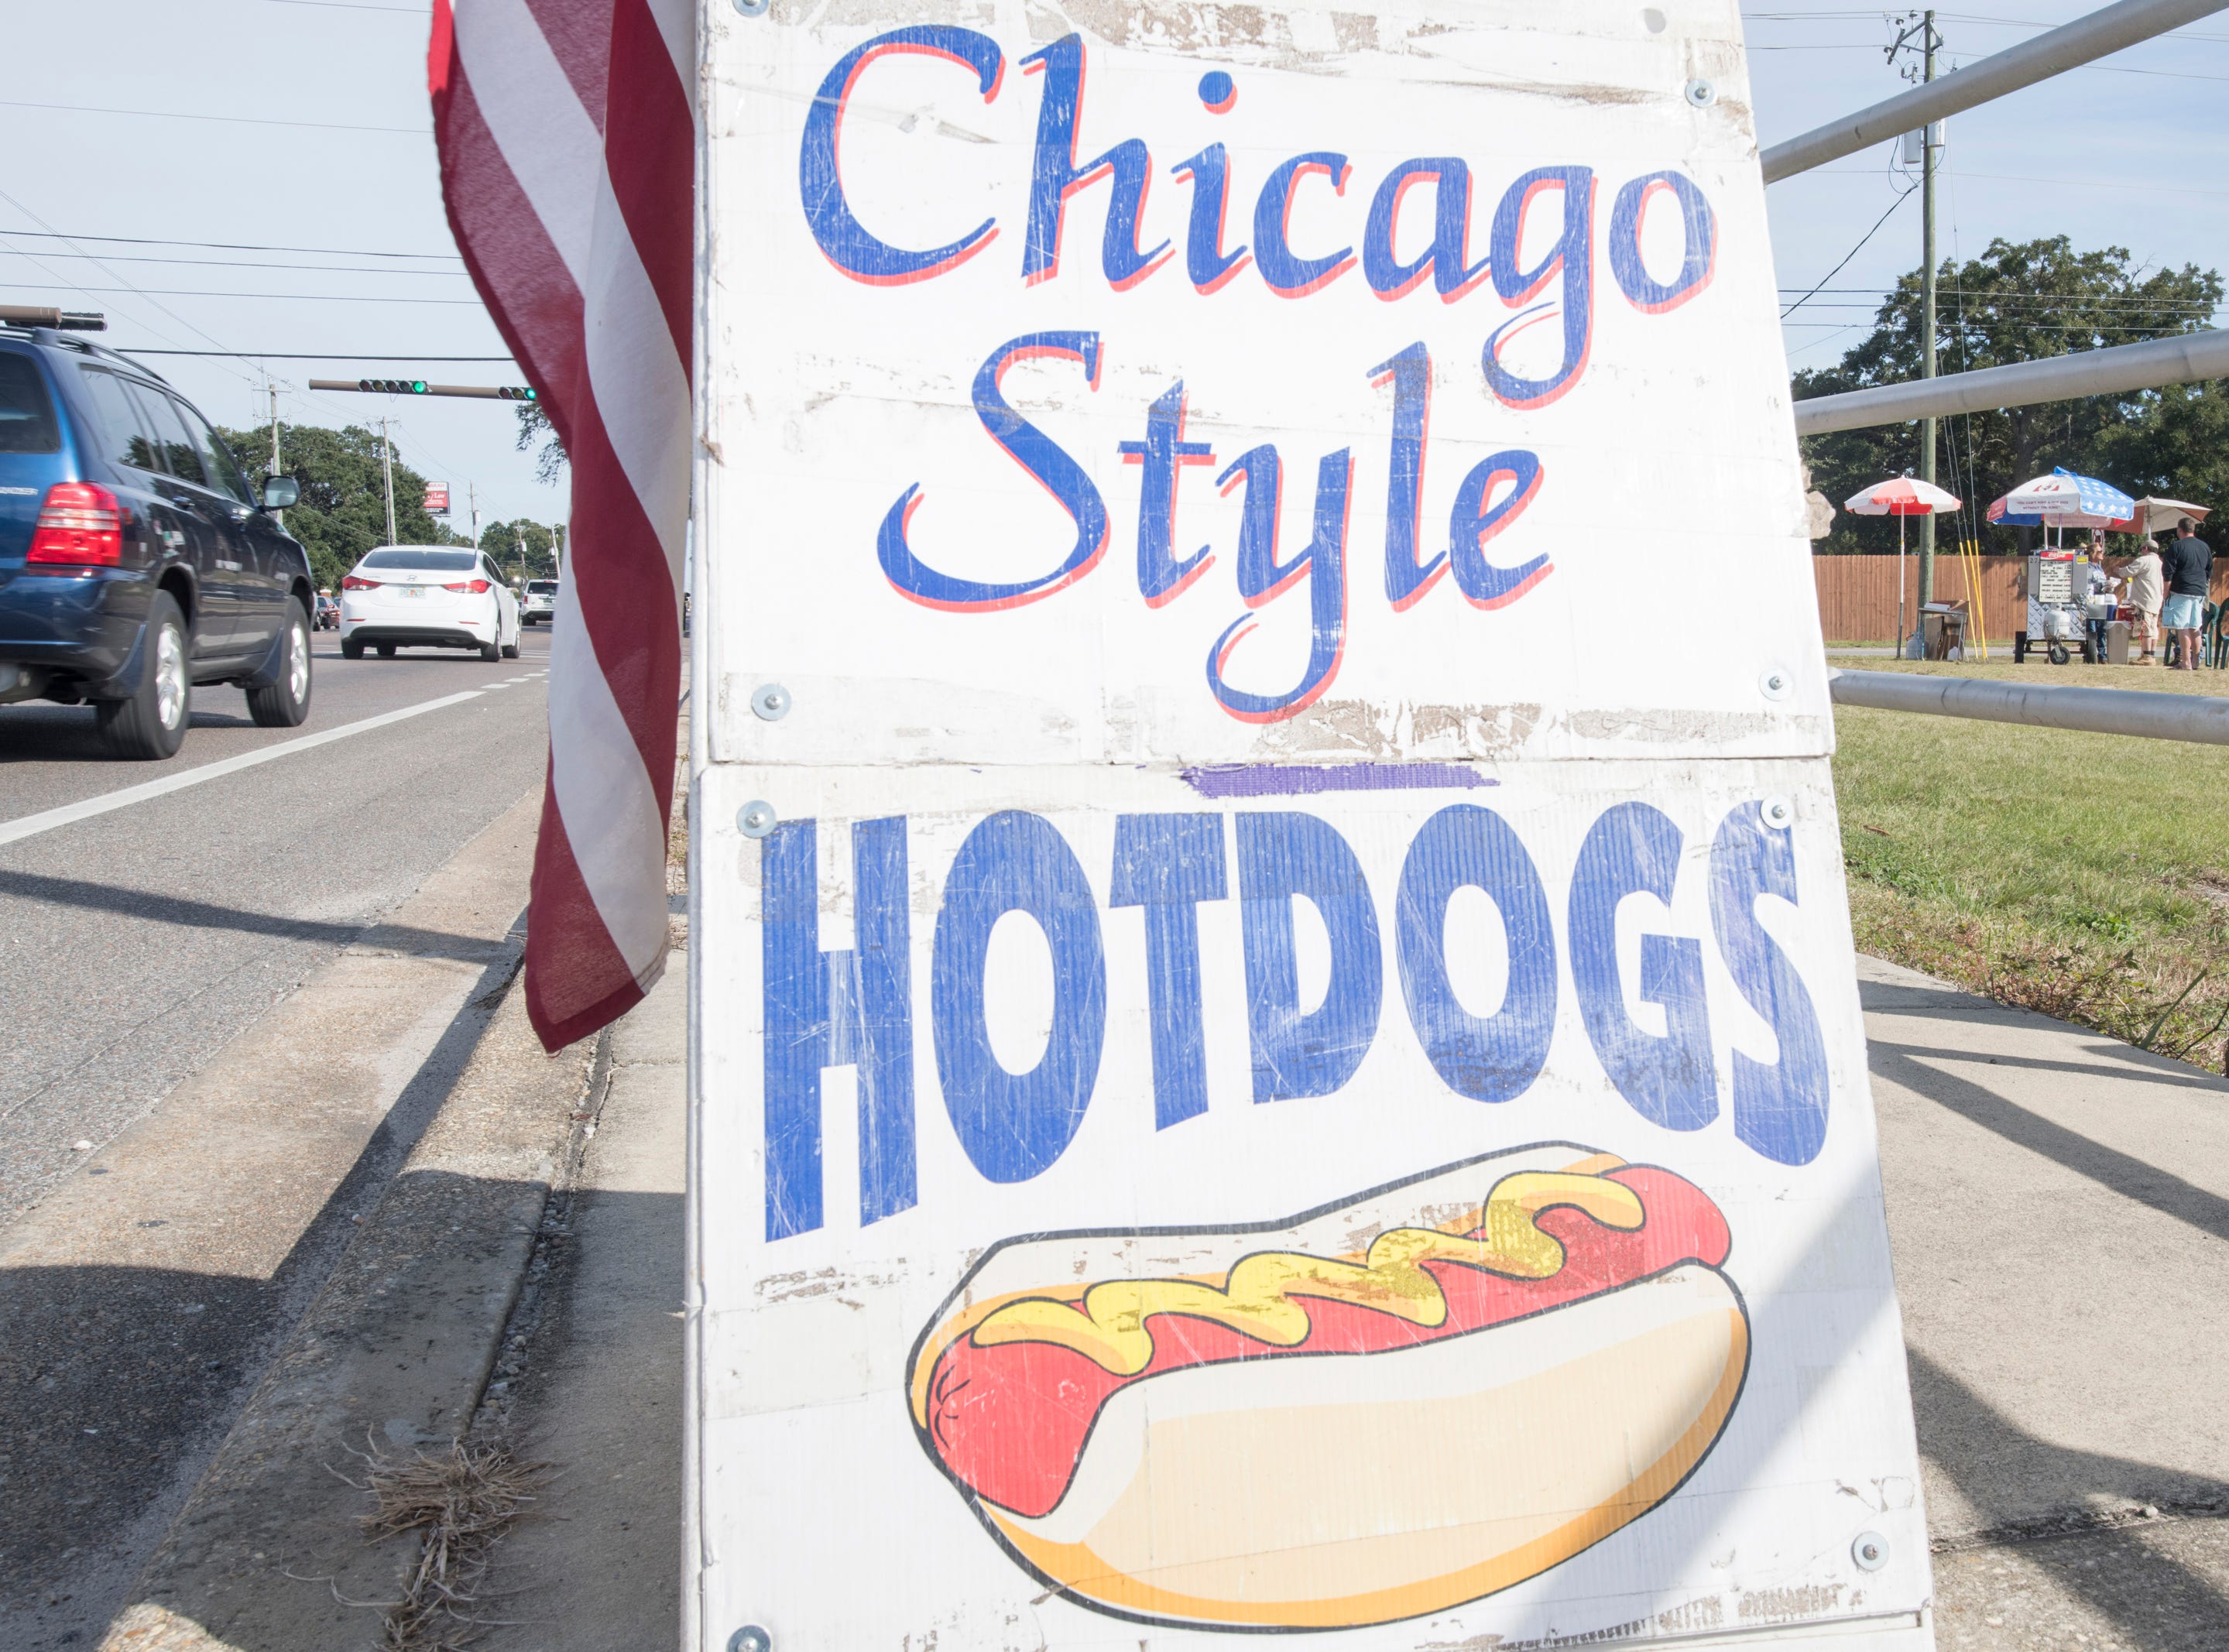 Owner and native-Chicagoan Ray Gluszek serves up Chicago Style dogs at his RG's Cafe hot dog stand on Barrancas Avenue in Warrington on Thursday, December 6, 2018.